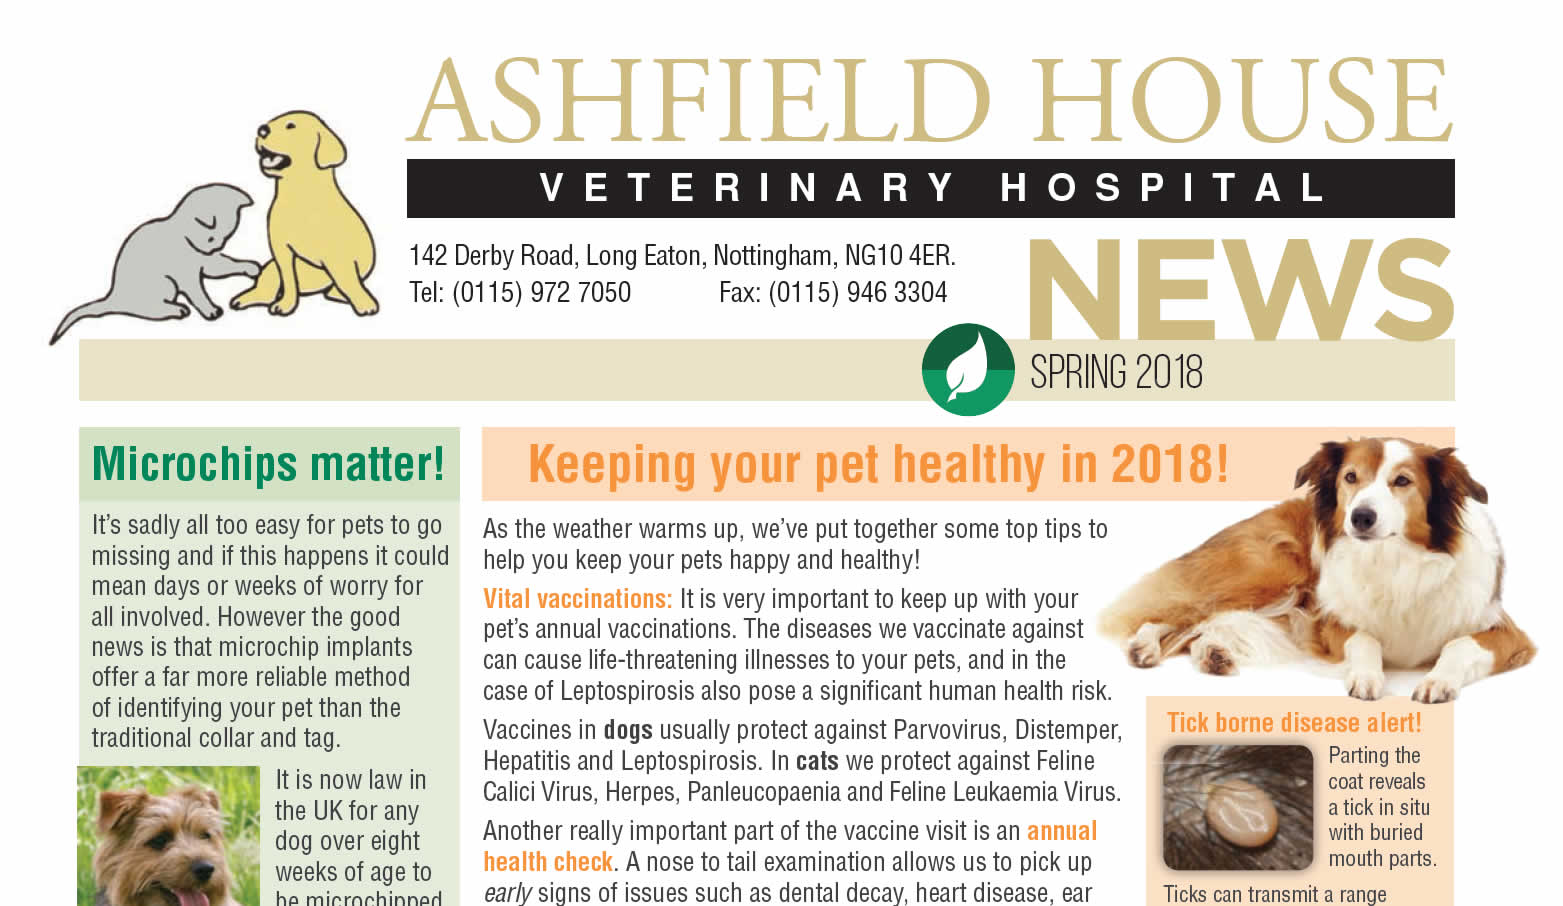 Spring 2018 Newsletter at ashfield house vets